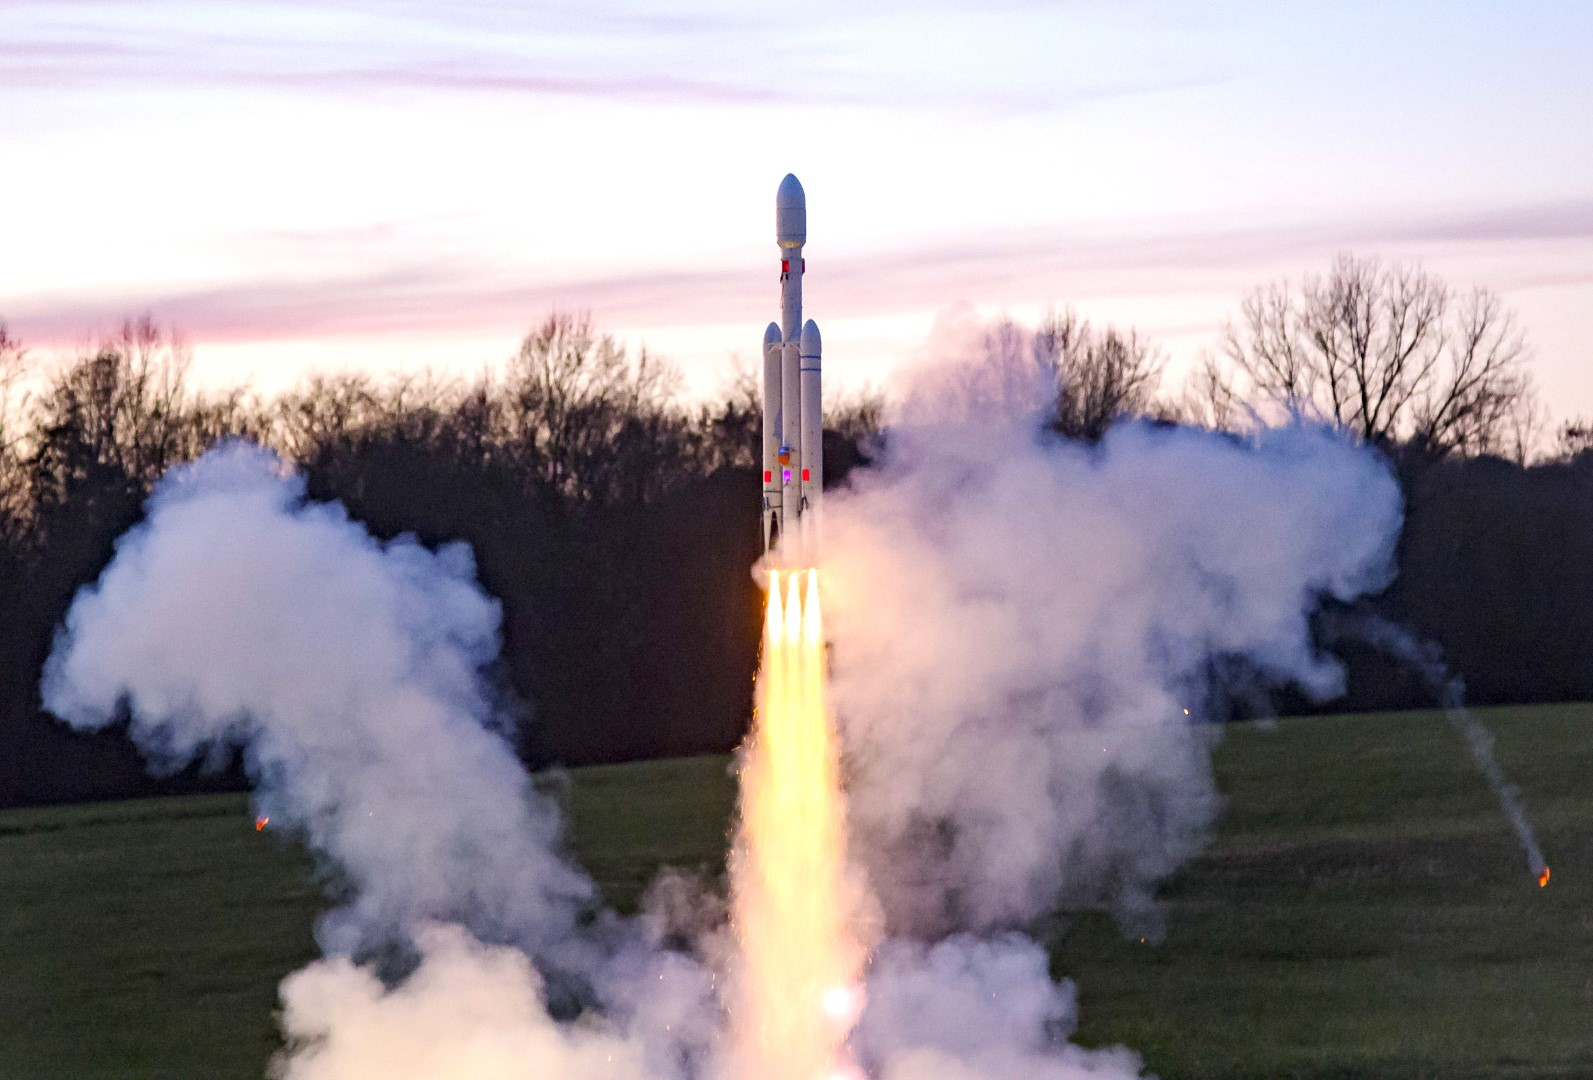 Build Your Own Thrust Vectored Rockets For Vertical Landings Like SpaceX